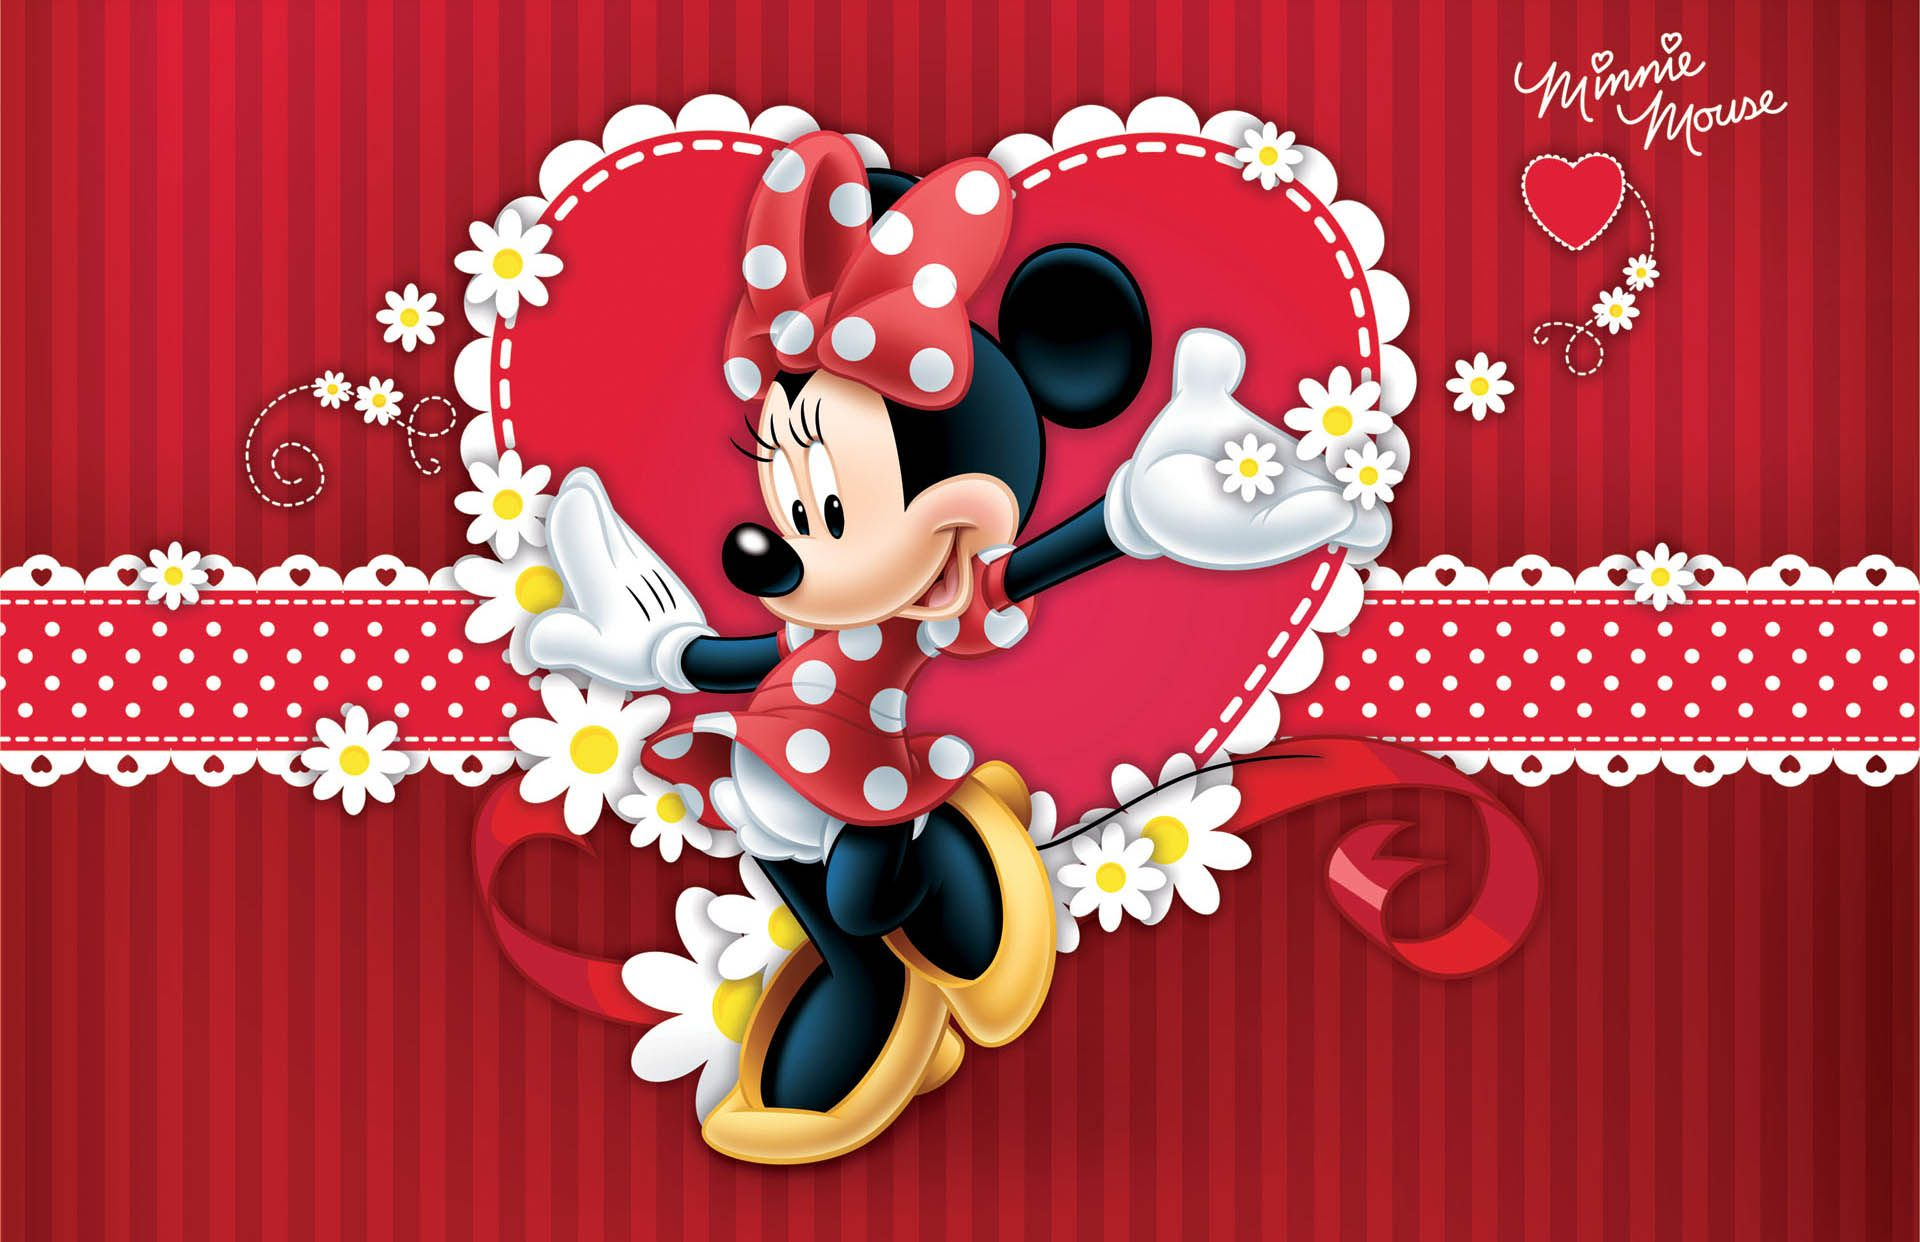 Lovely minnie mouse in red dress wallpapers. | Recursos ...